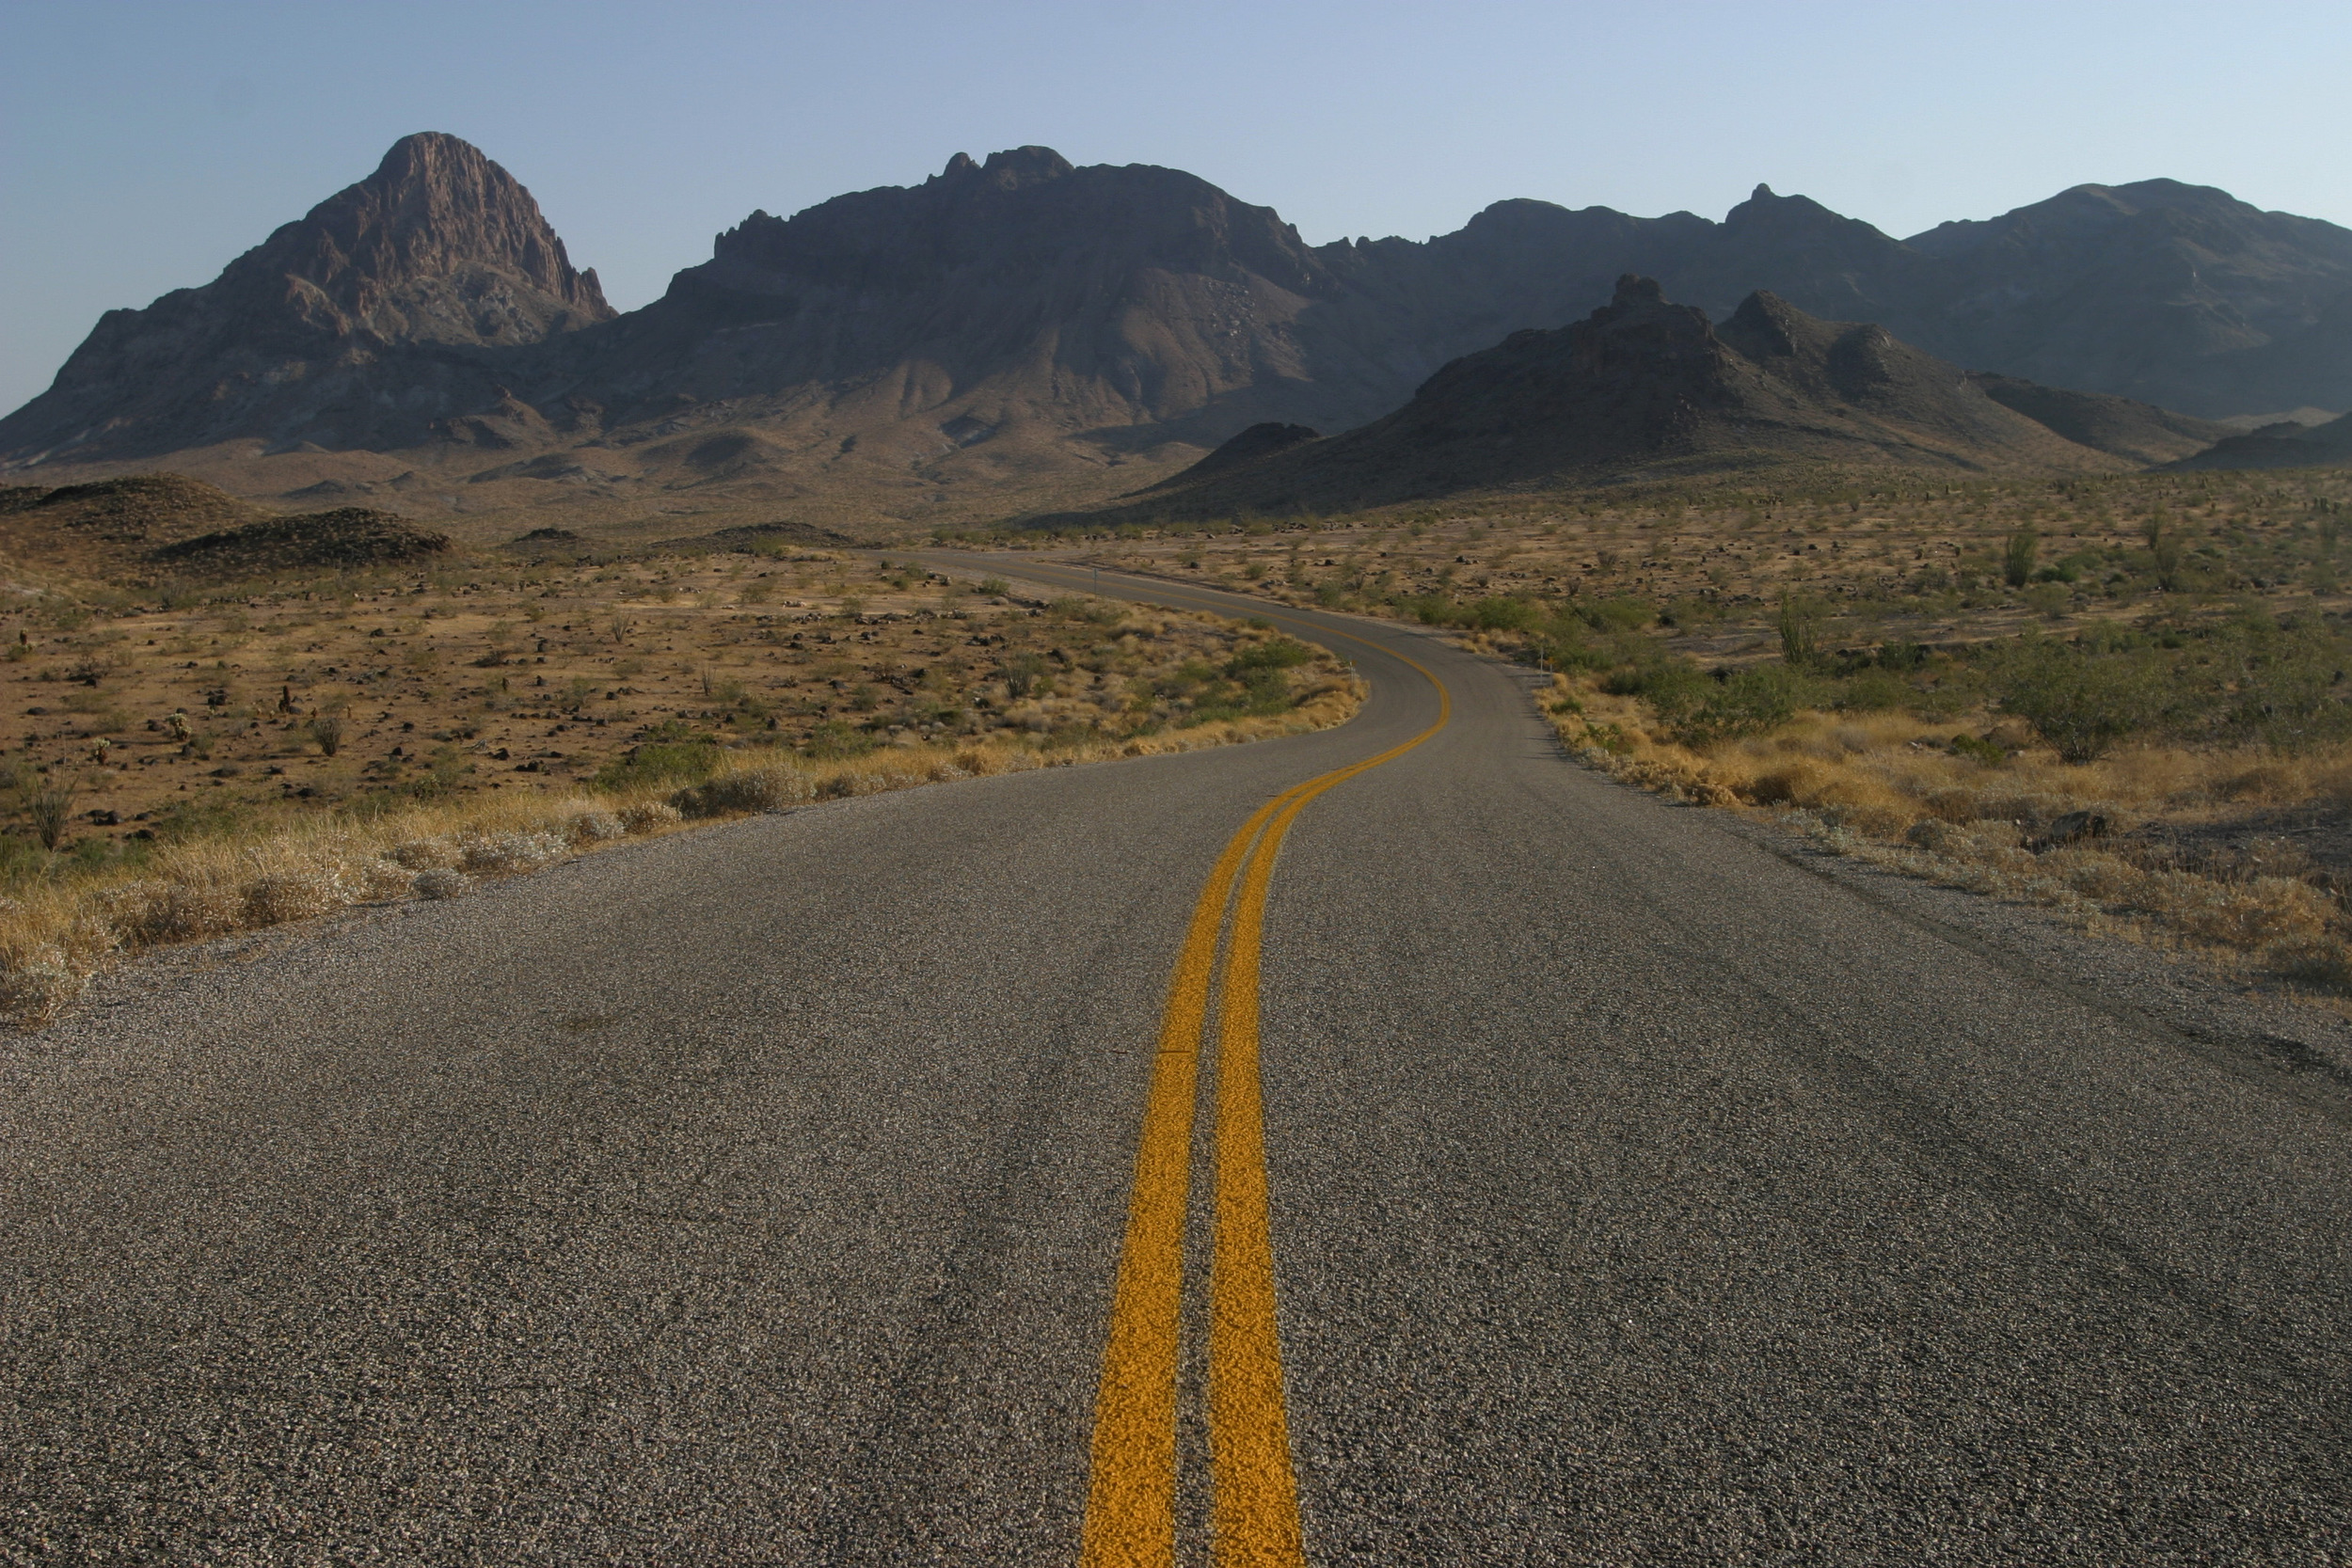 Route 66 winds into the mountains near the border of Arizona and California.